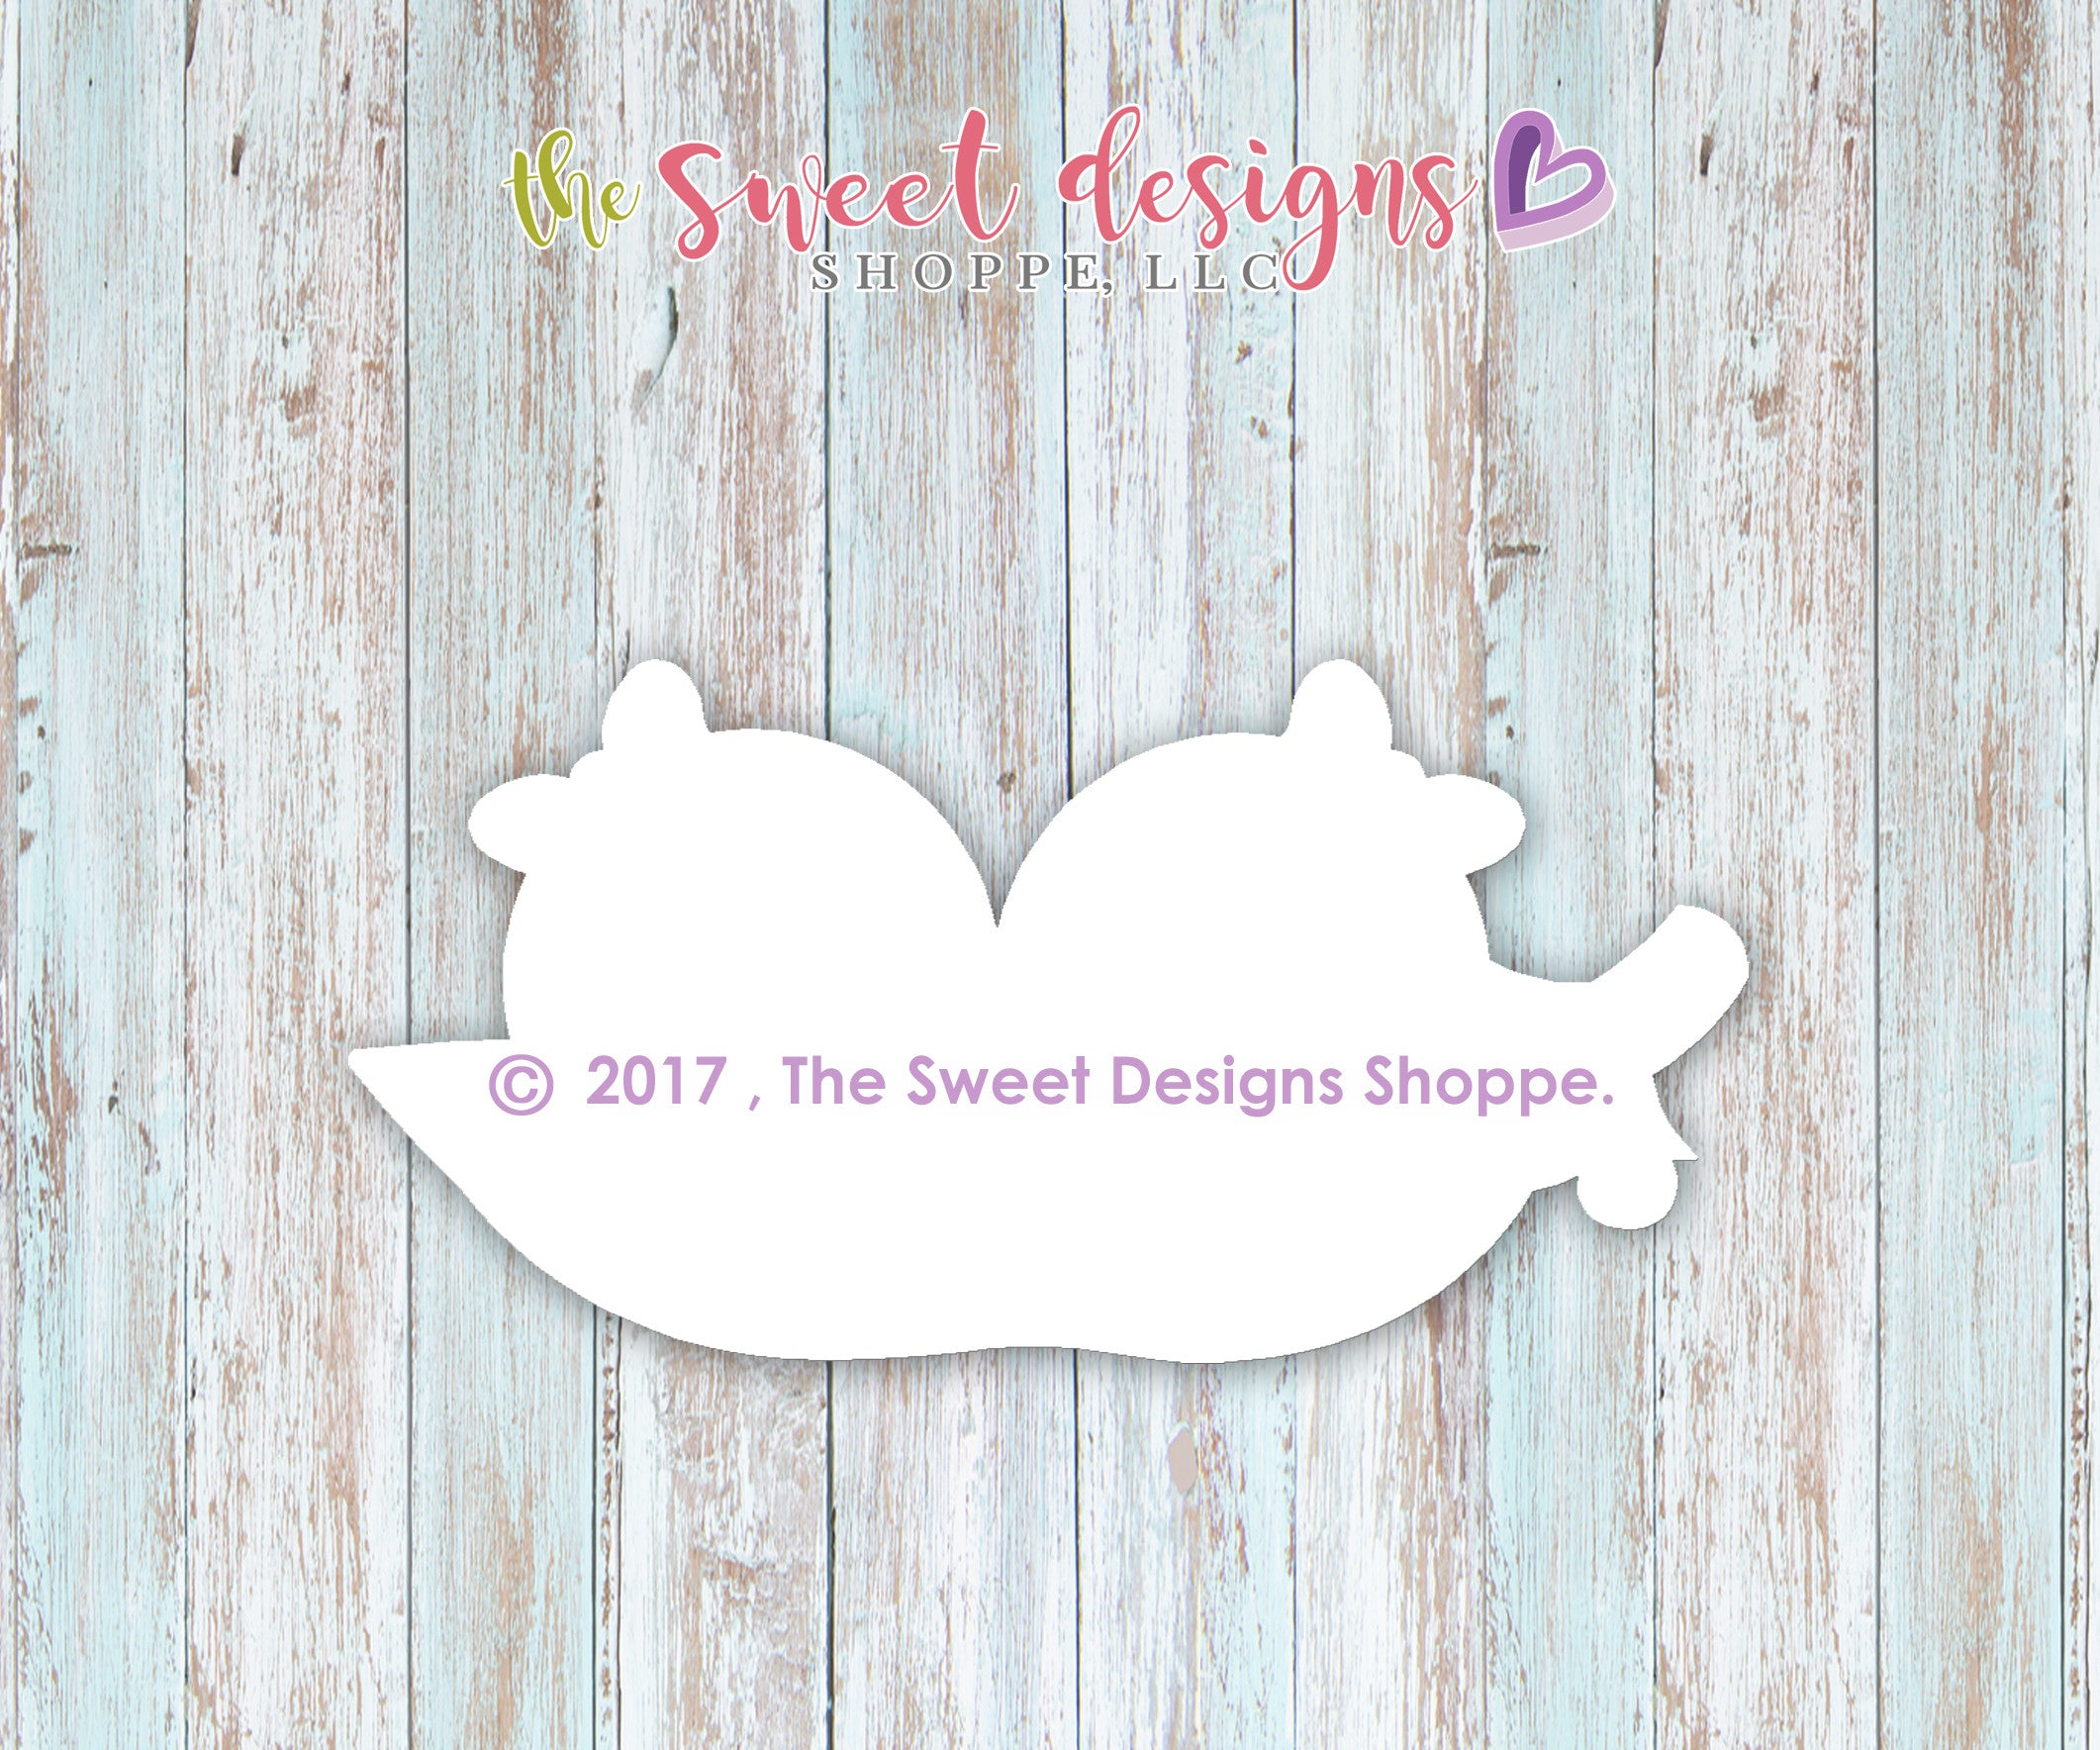 Two Peas in a Pod with Bow – Sweet Designs Shoppe